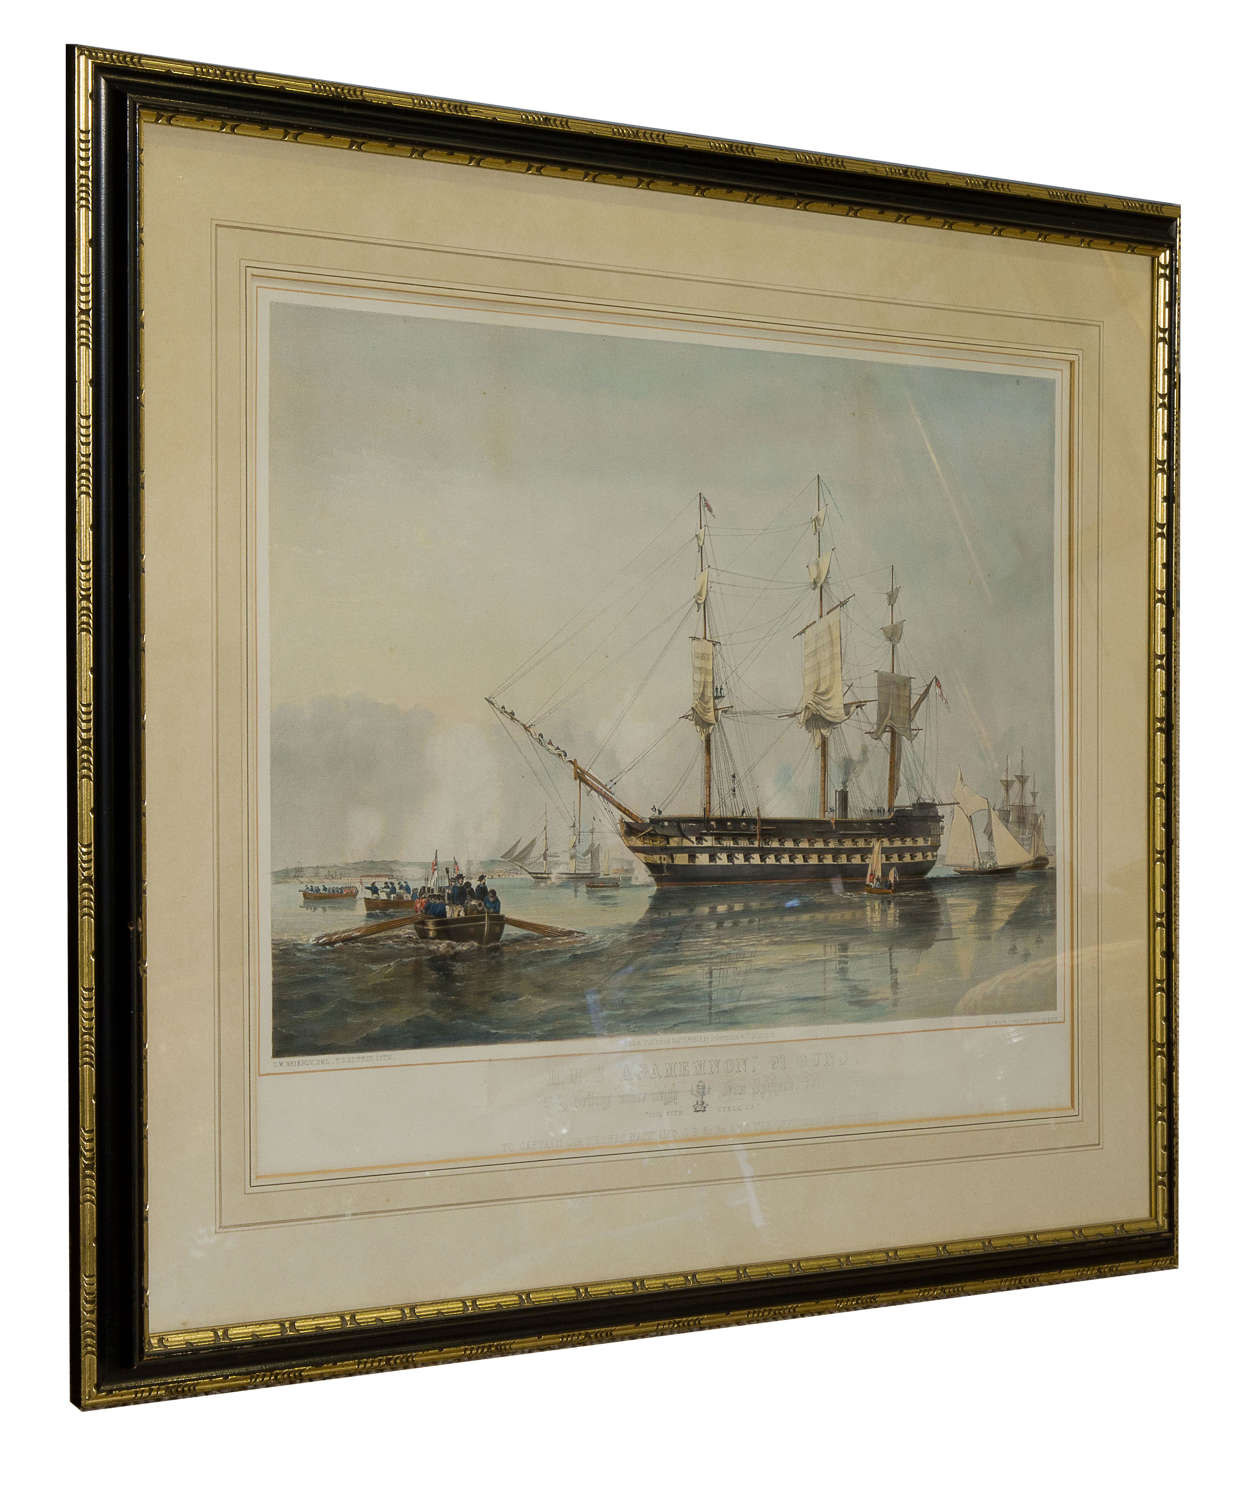 19th Century Hand-Coloured Lithograph by TG Dutton